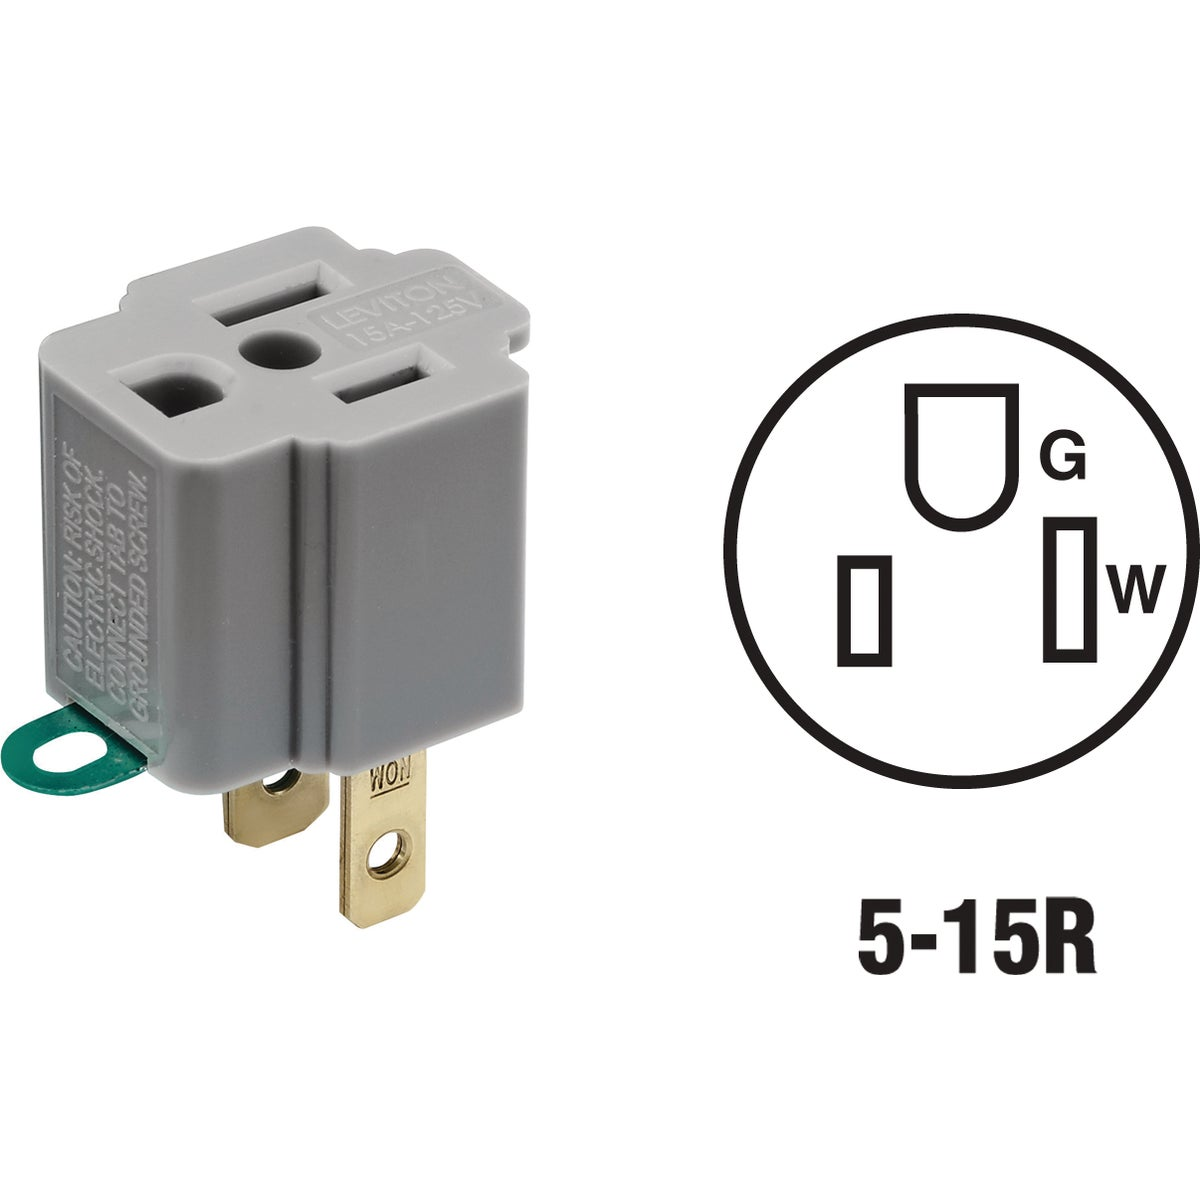 Item 504010, Converts outlet for 2-prong plugs to outlet for 3-prong grounding plugs. 15A/125V. Gray.